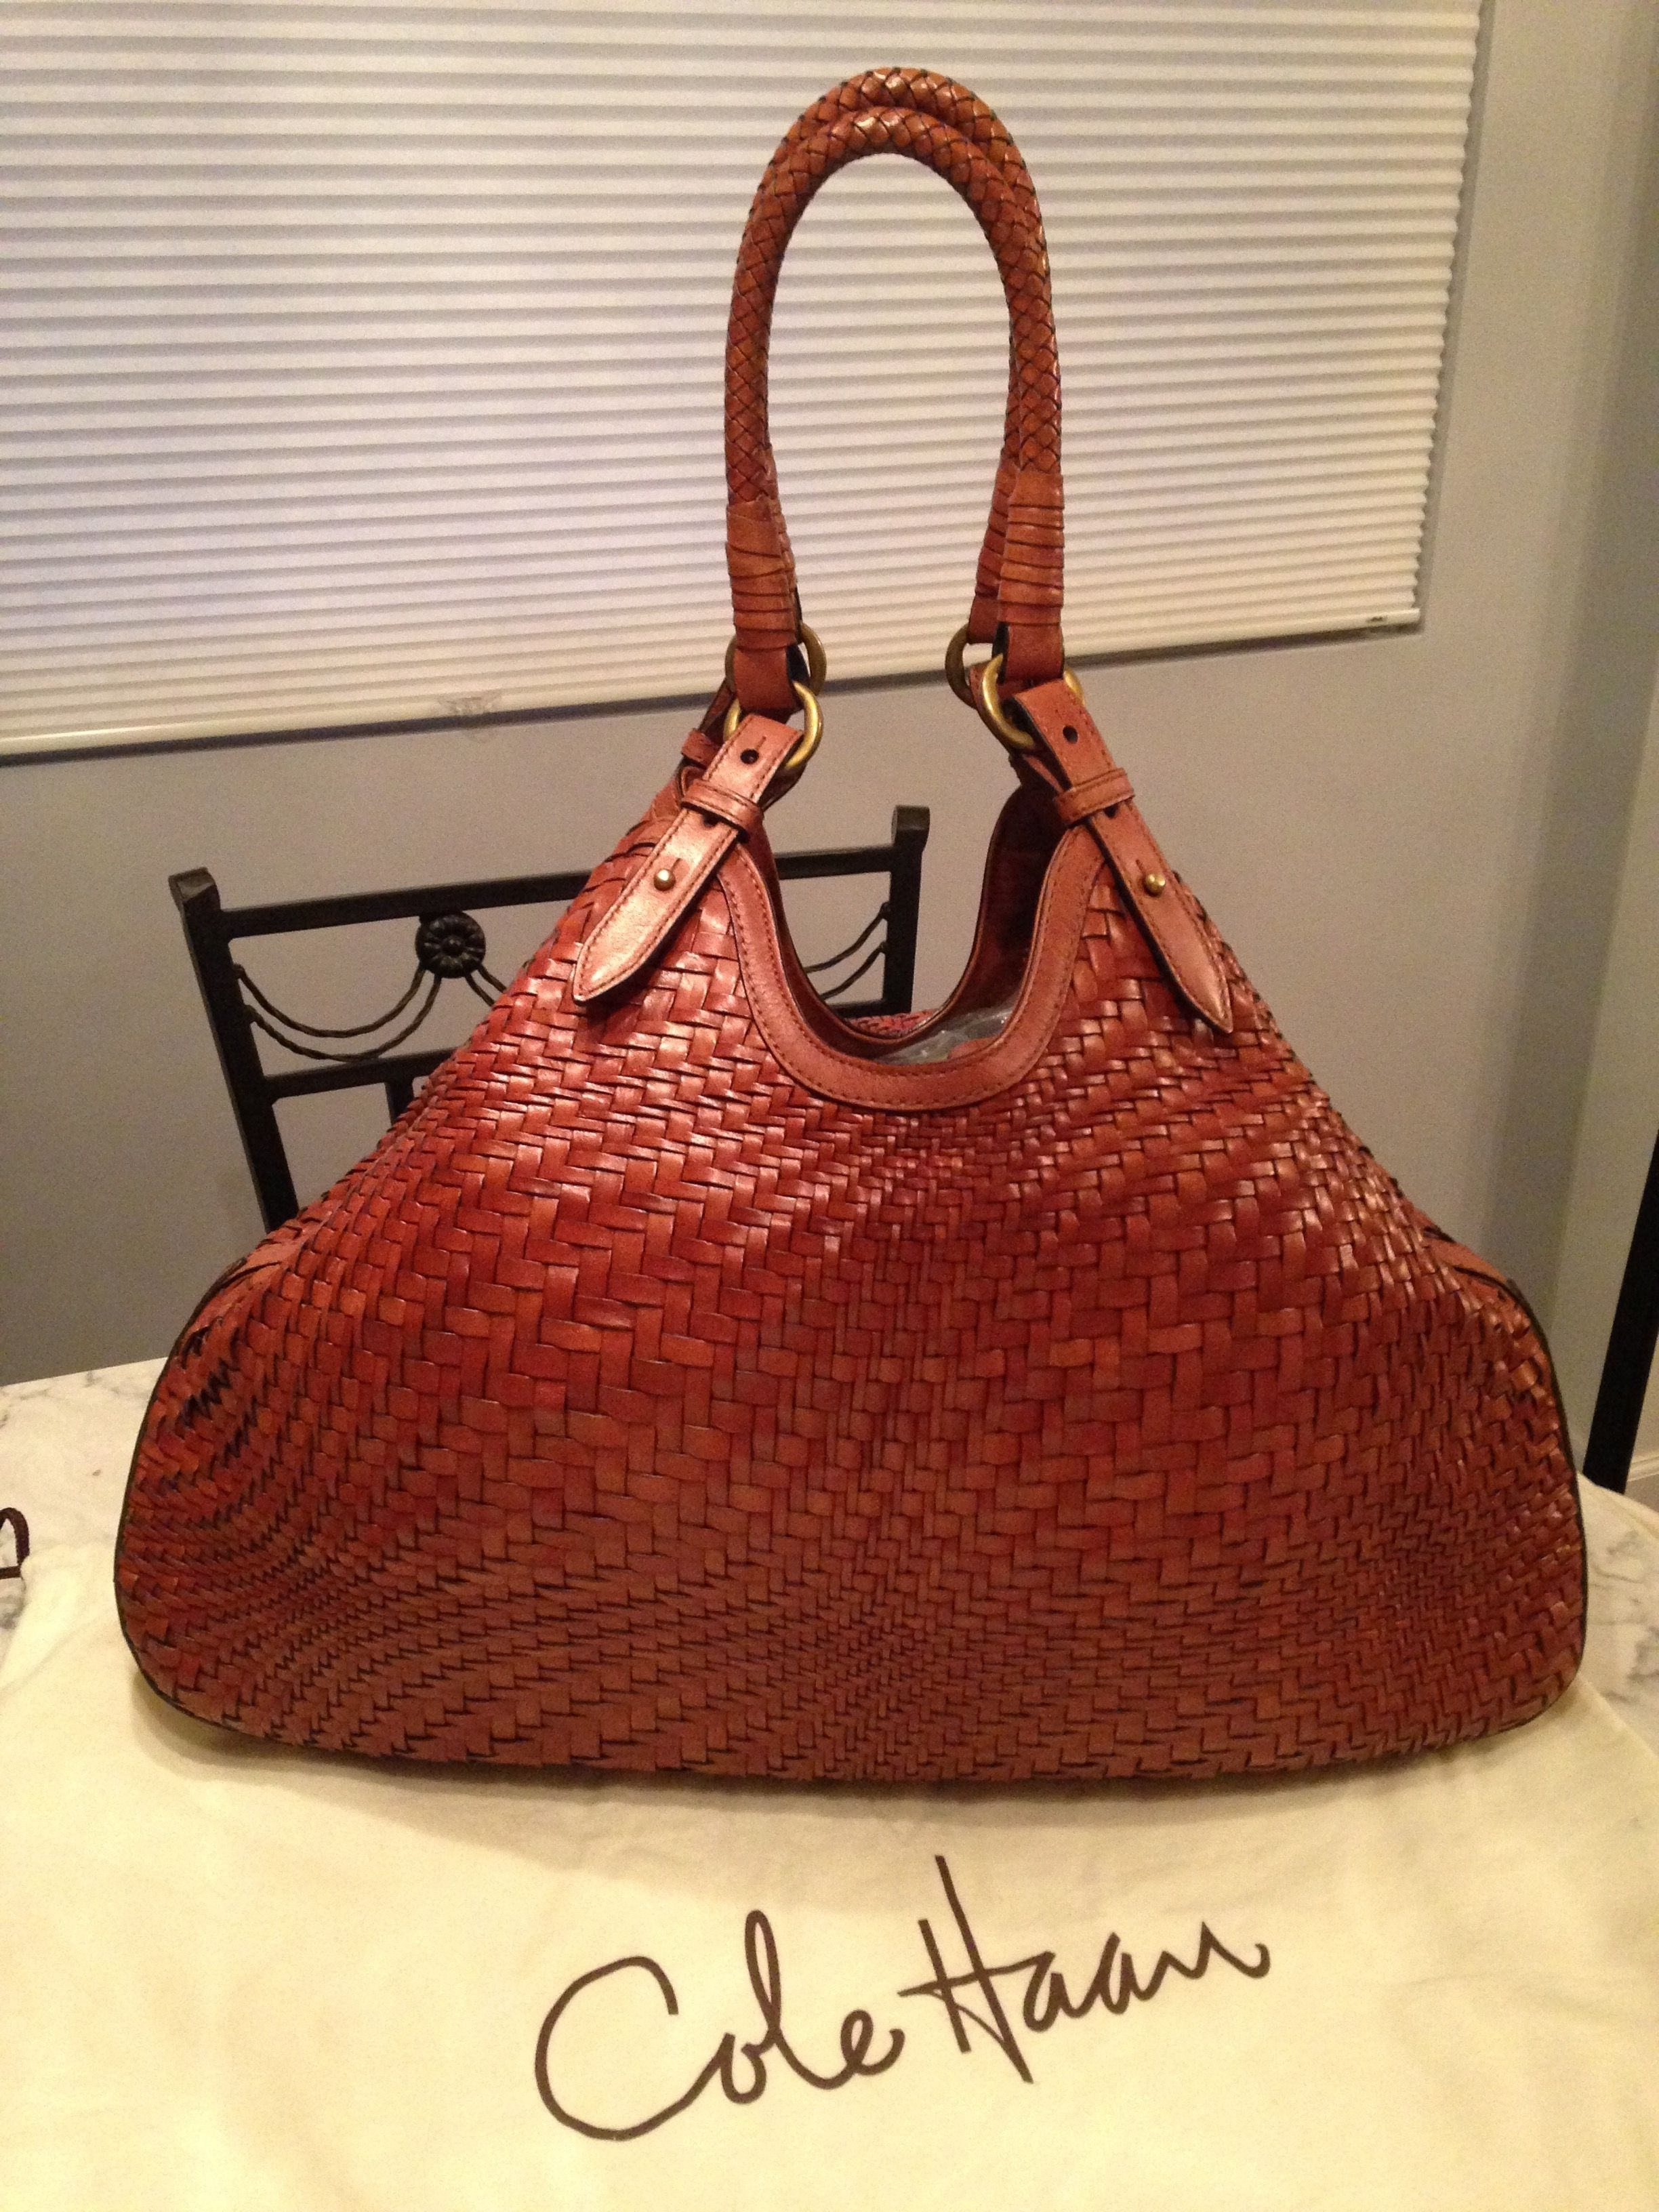 Cole Haan Genevieve 19 Large Woven Leather Weave Triangle Hobo Handbag Saddle Brown Cognac Tote Bag Get One Of The Hottest Styles Season